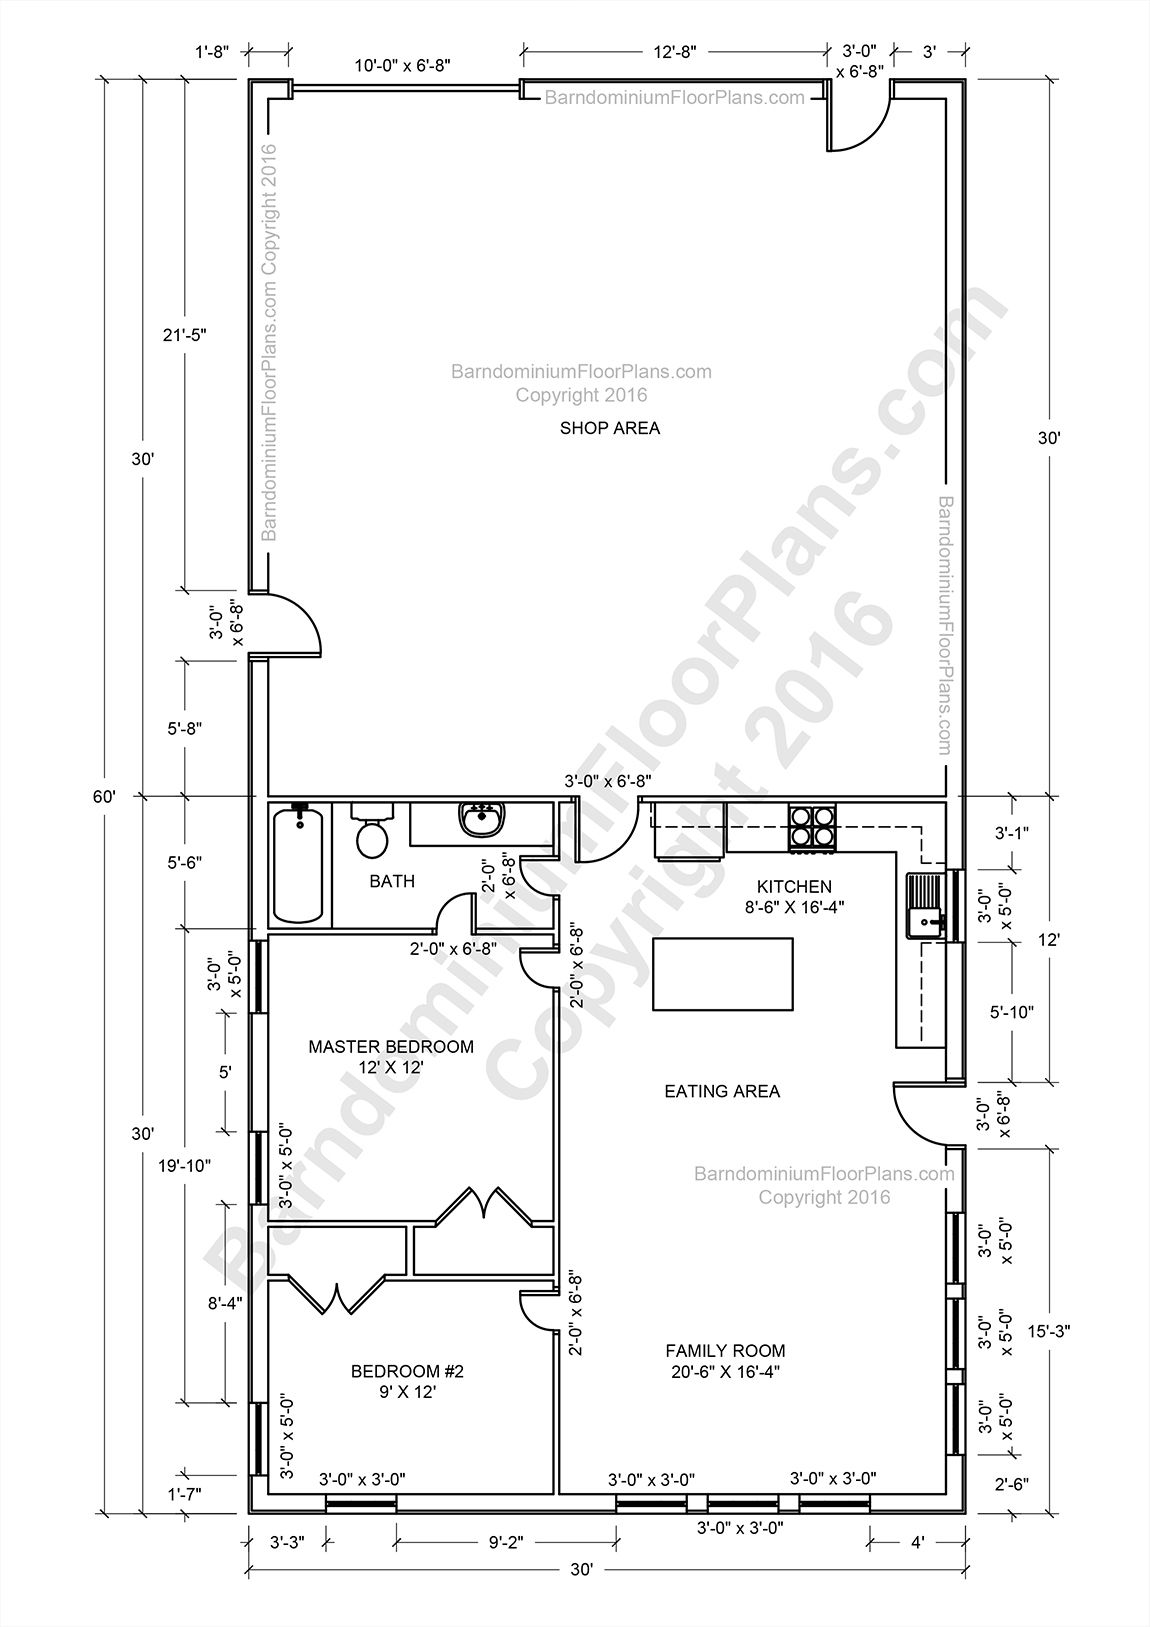 Barndominium Floor Plans Pole Barn House And Metal Building 40x60 30x40 Modern 40x50 40x80 30x50 30x30 With Shop Garage Rareybird Com Barndominium Floor Plans Pole Barn House Plans Metal Building Homes